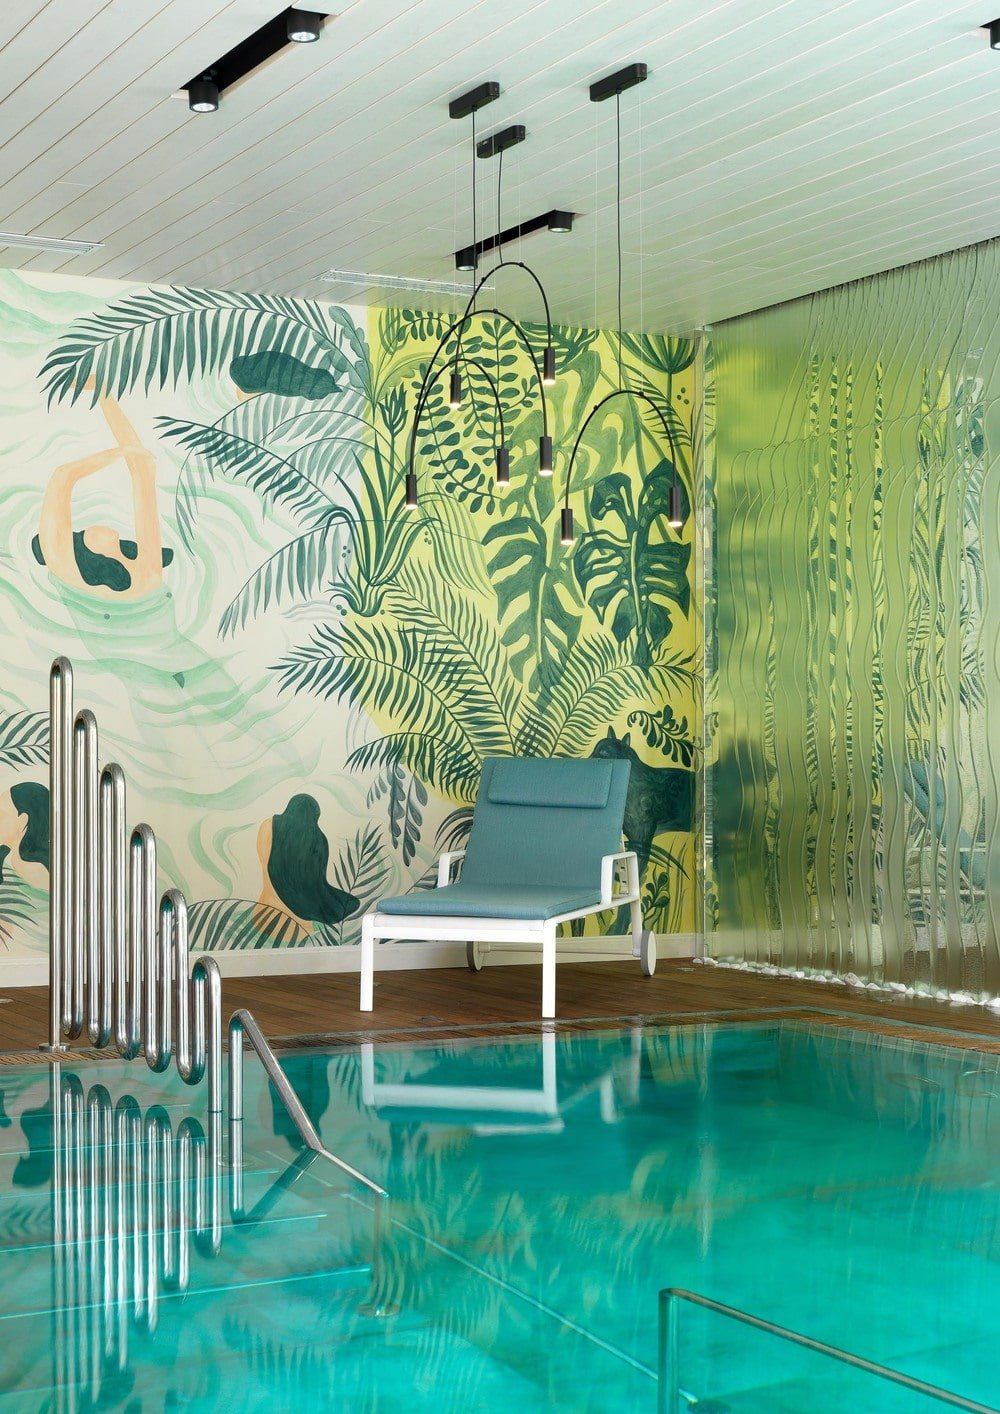 The walls of this indoor pool is filled with colorful murals that depict various tropical vegetation to set as a nice background for the gray cushioned lawn chair at the pool side.